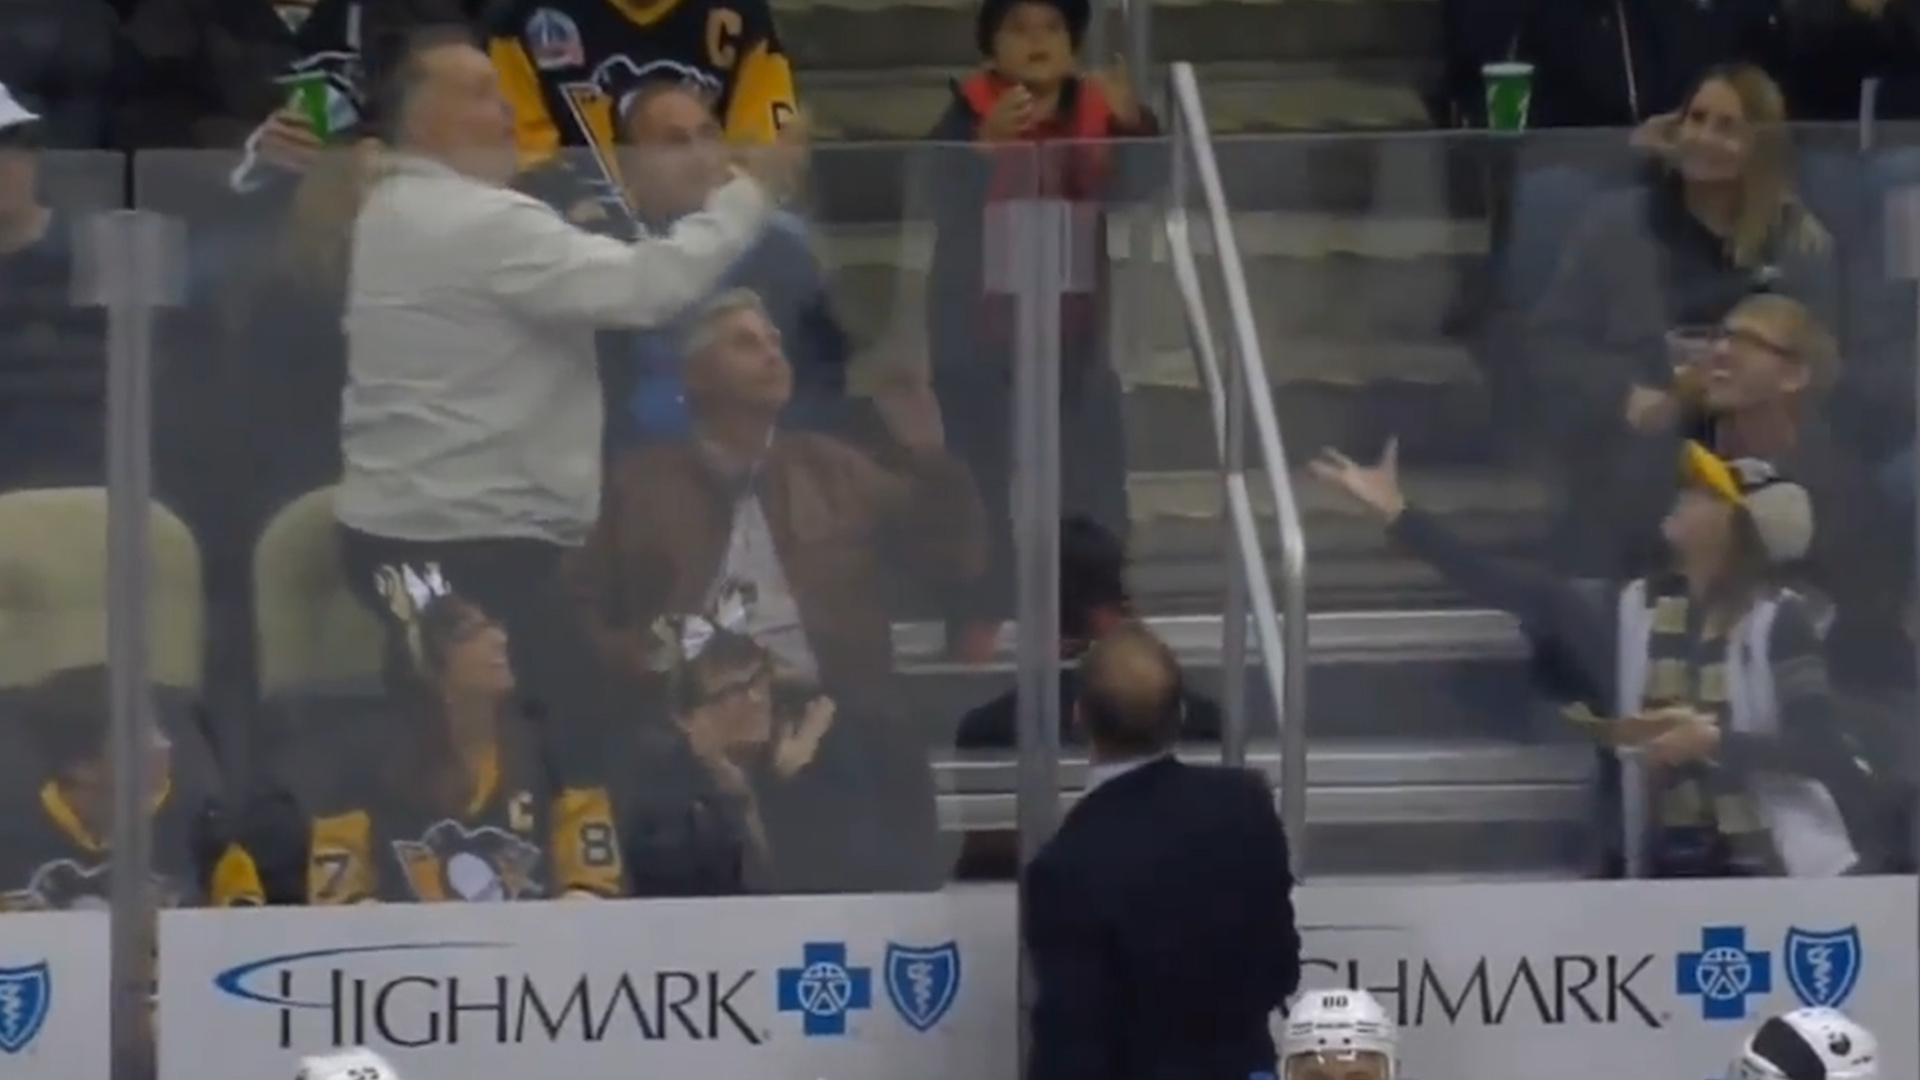 Pittsburgh Penguins to The Rescue After Man Snatches Away Hockey Puck Meant For Little Boy at Game: 'We're on It – Don't You Worry'